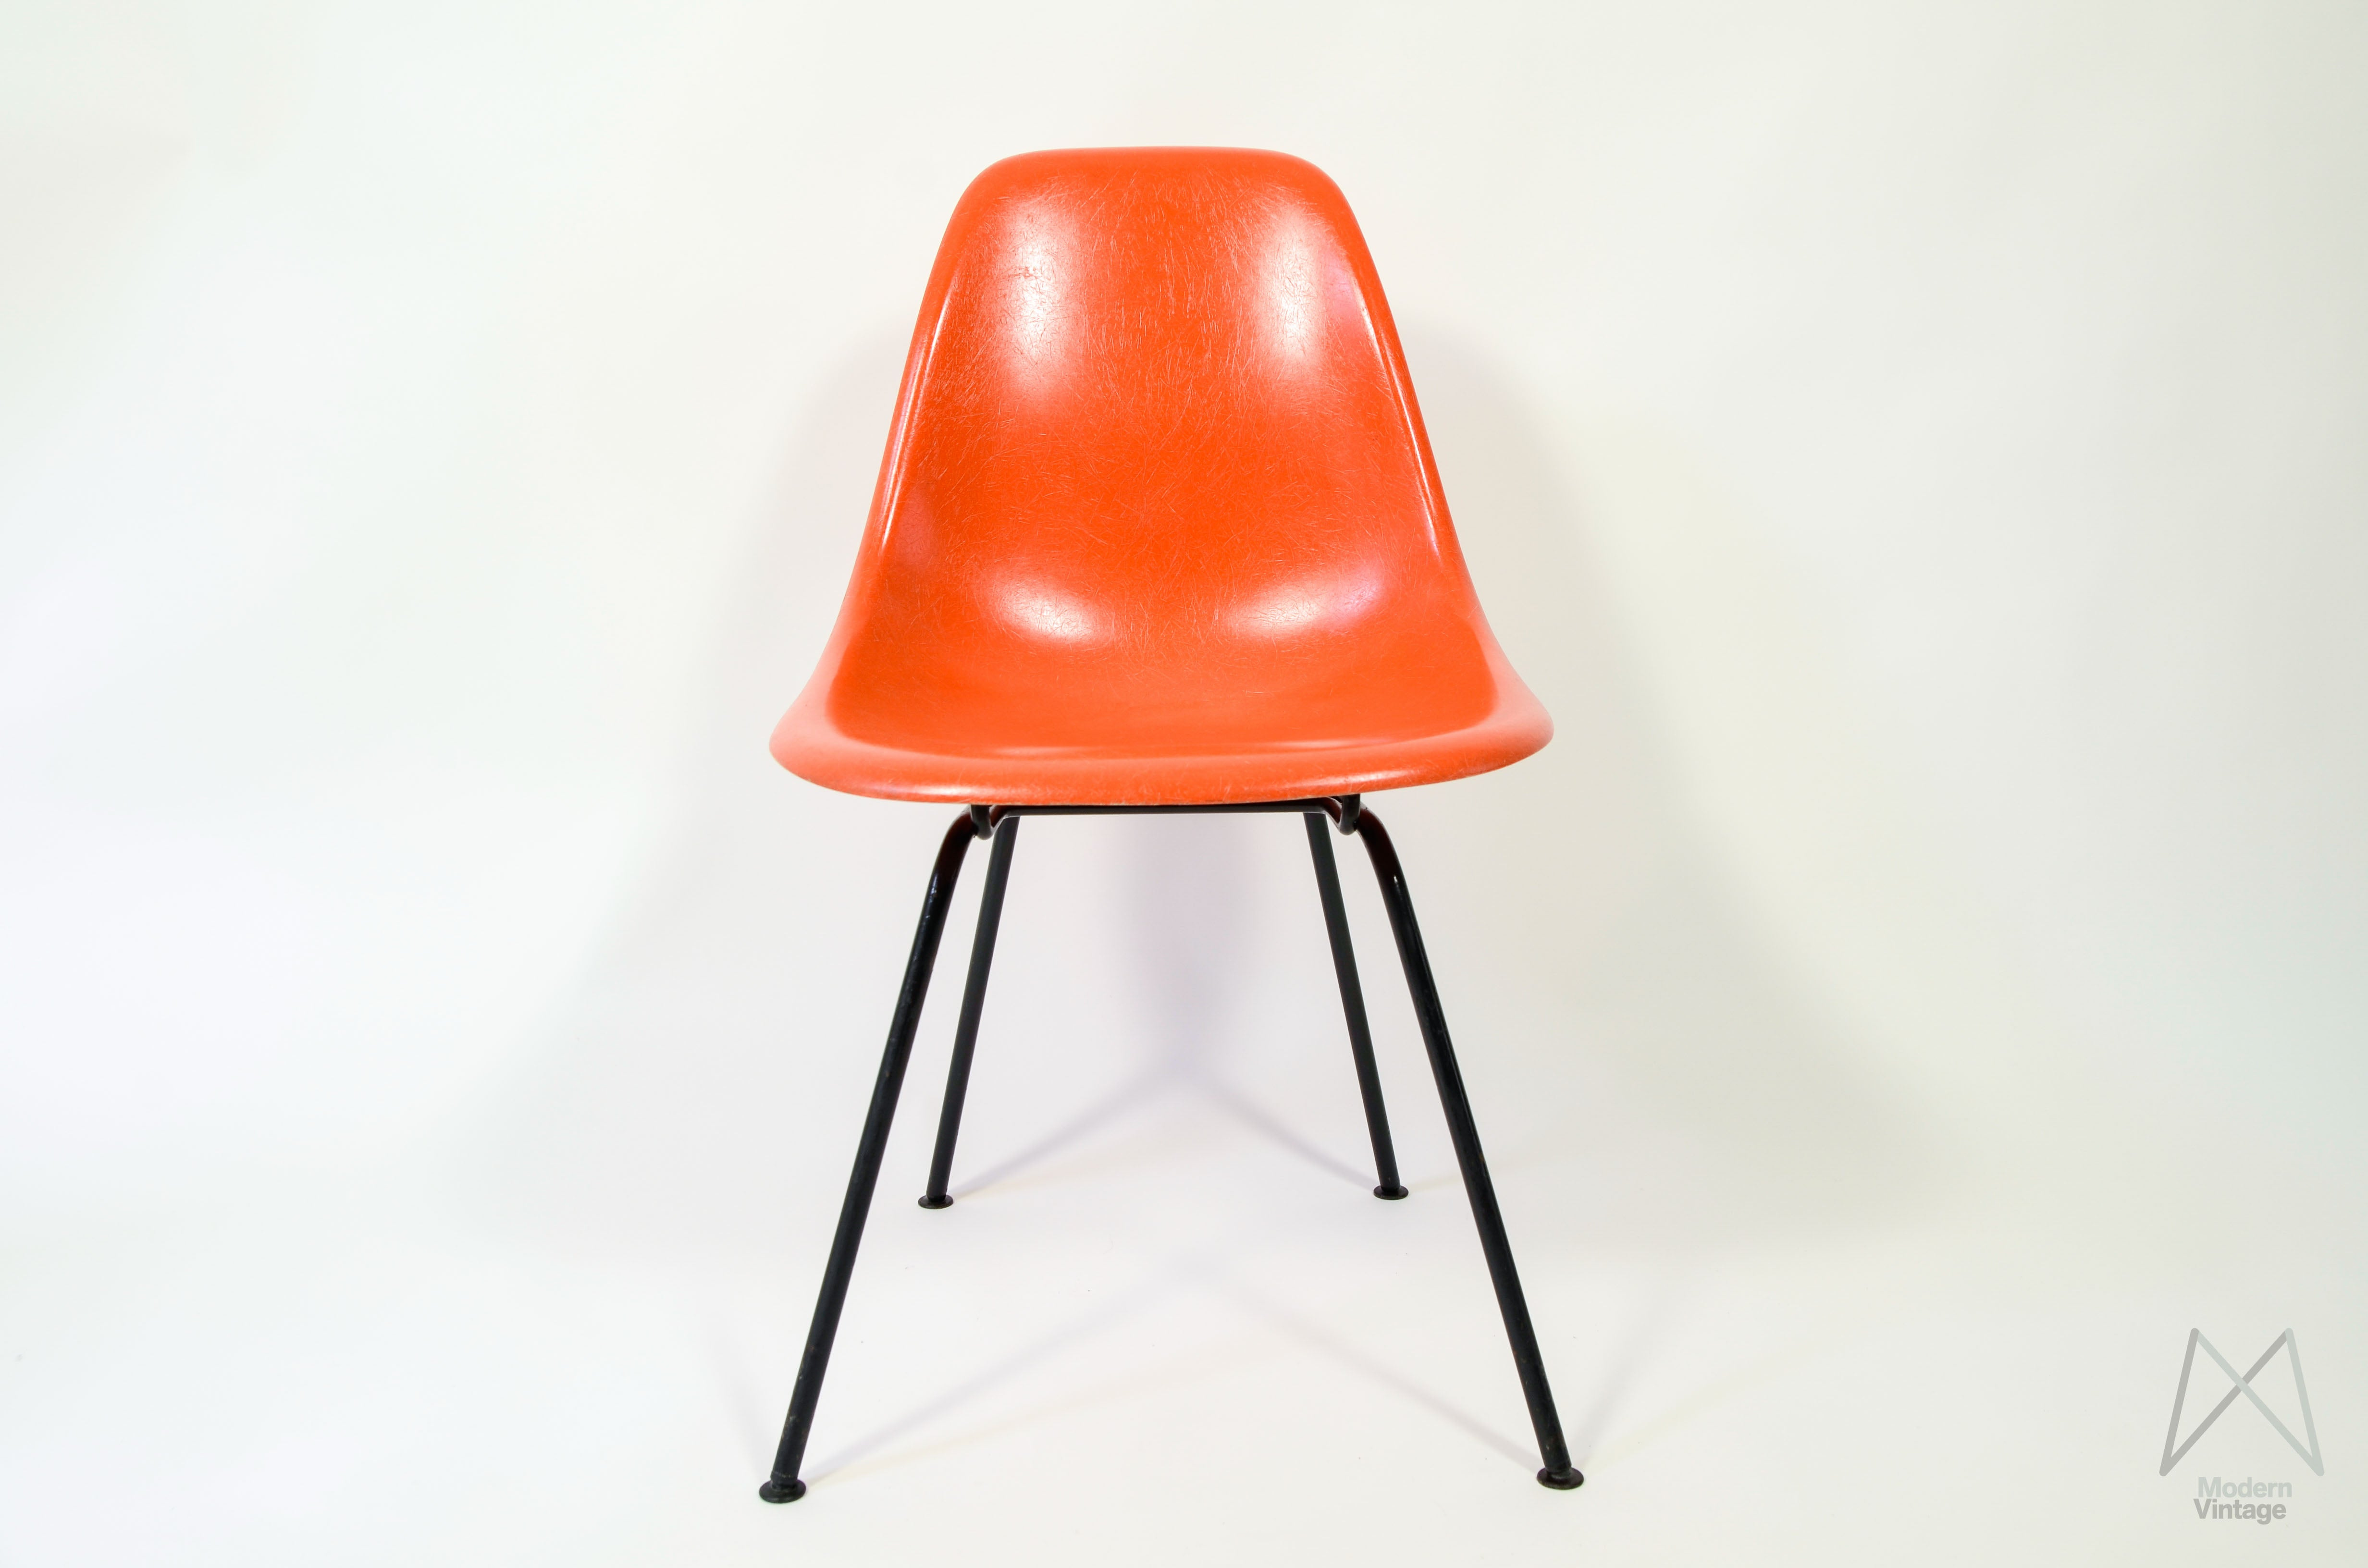 chaises dsw eames beautiful image of eames herman miller dsx dsr dsw red orange chaise. Black Bedroom Furniture Sets. Home Design Ideas